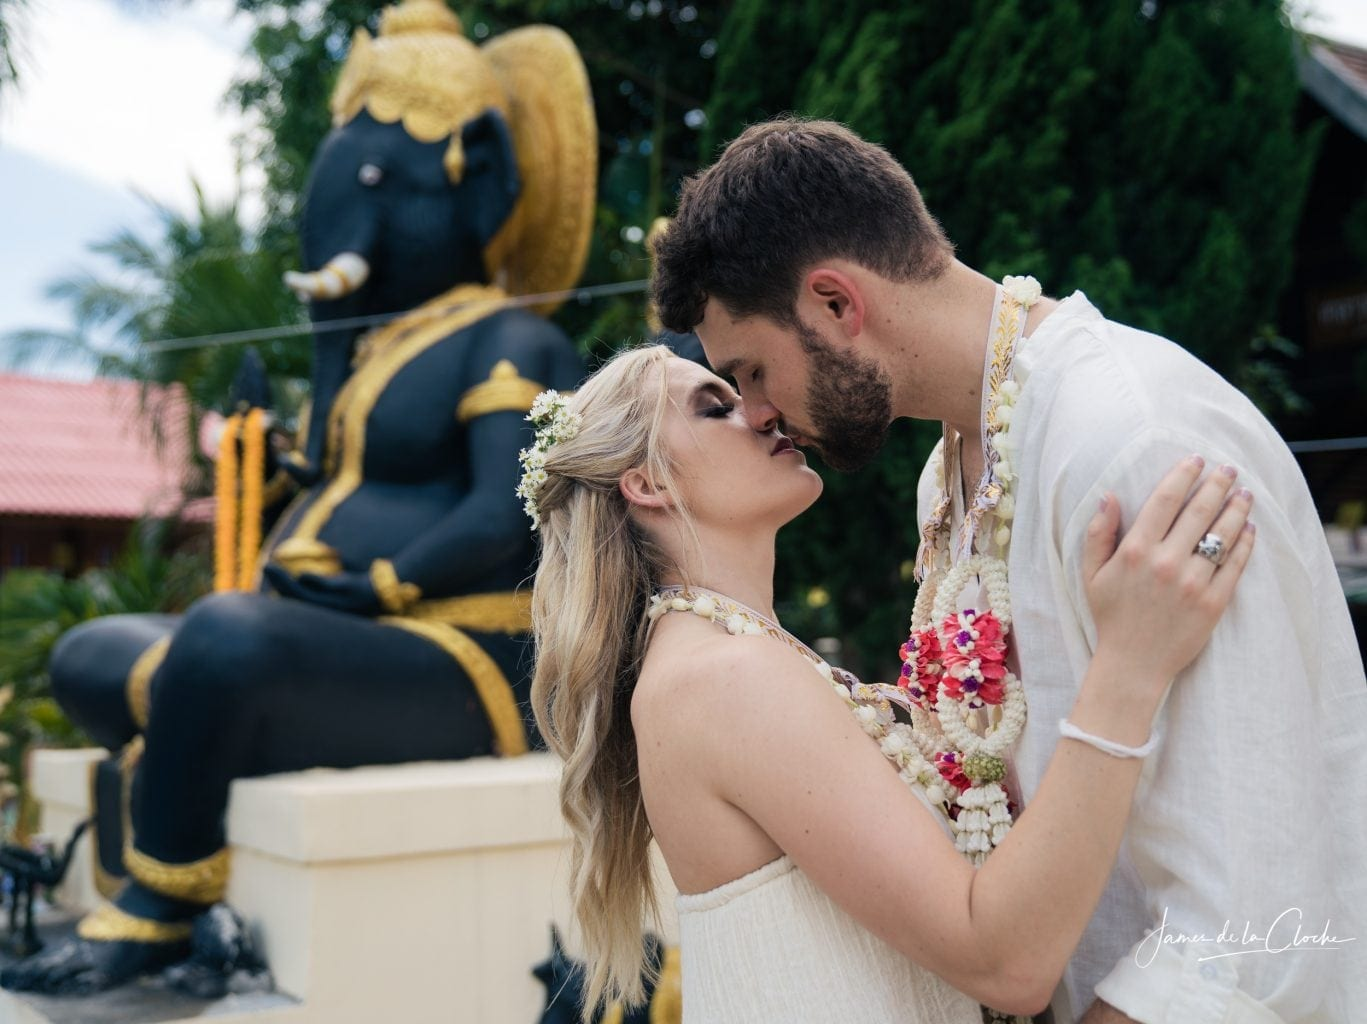 The kiss before Ganesh